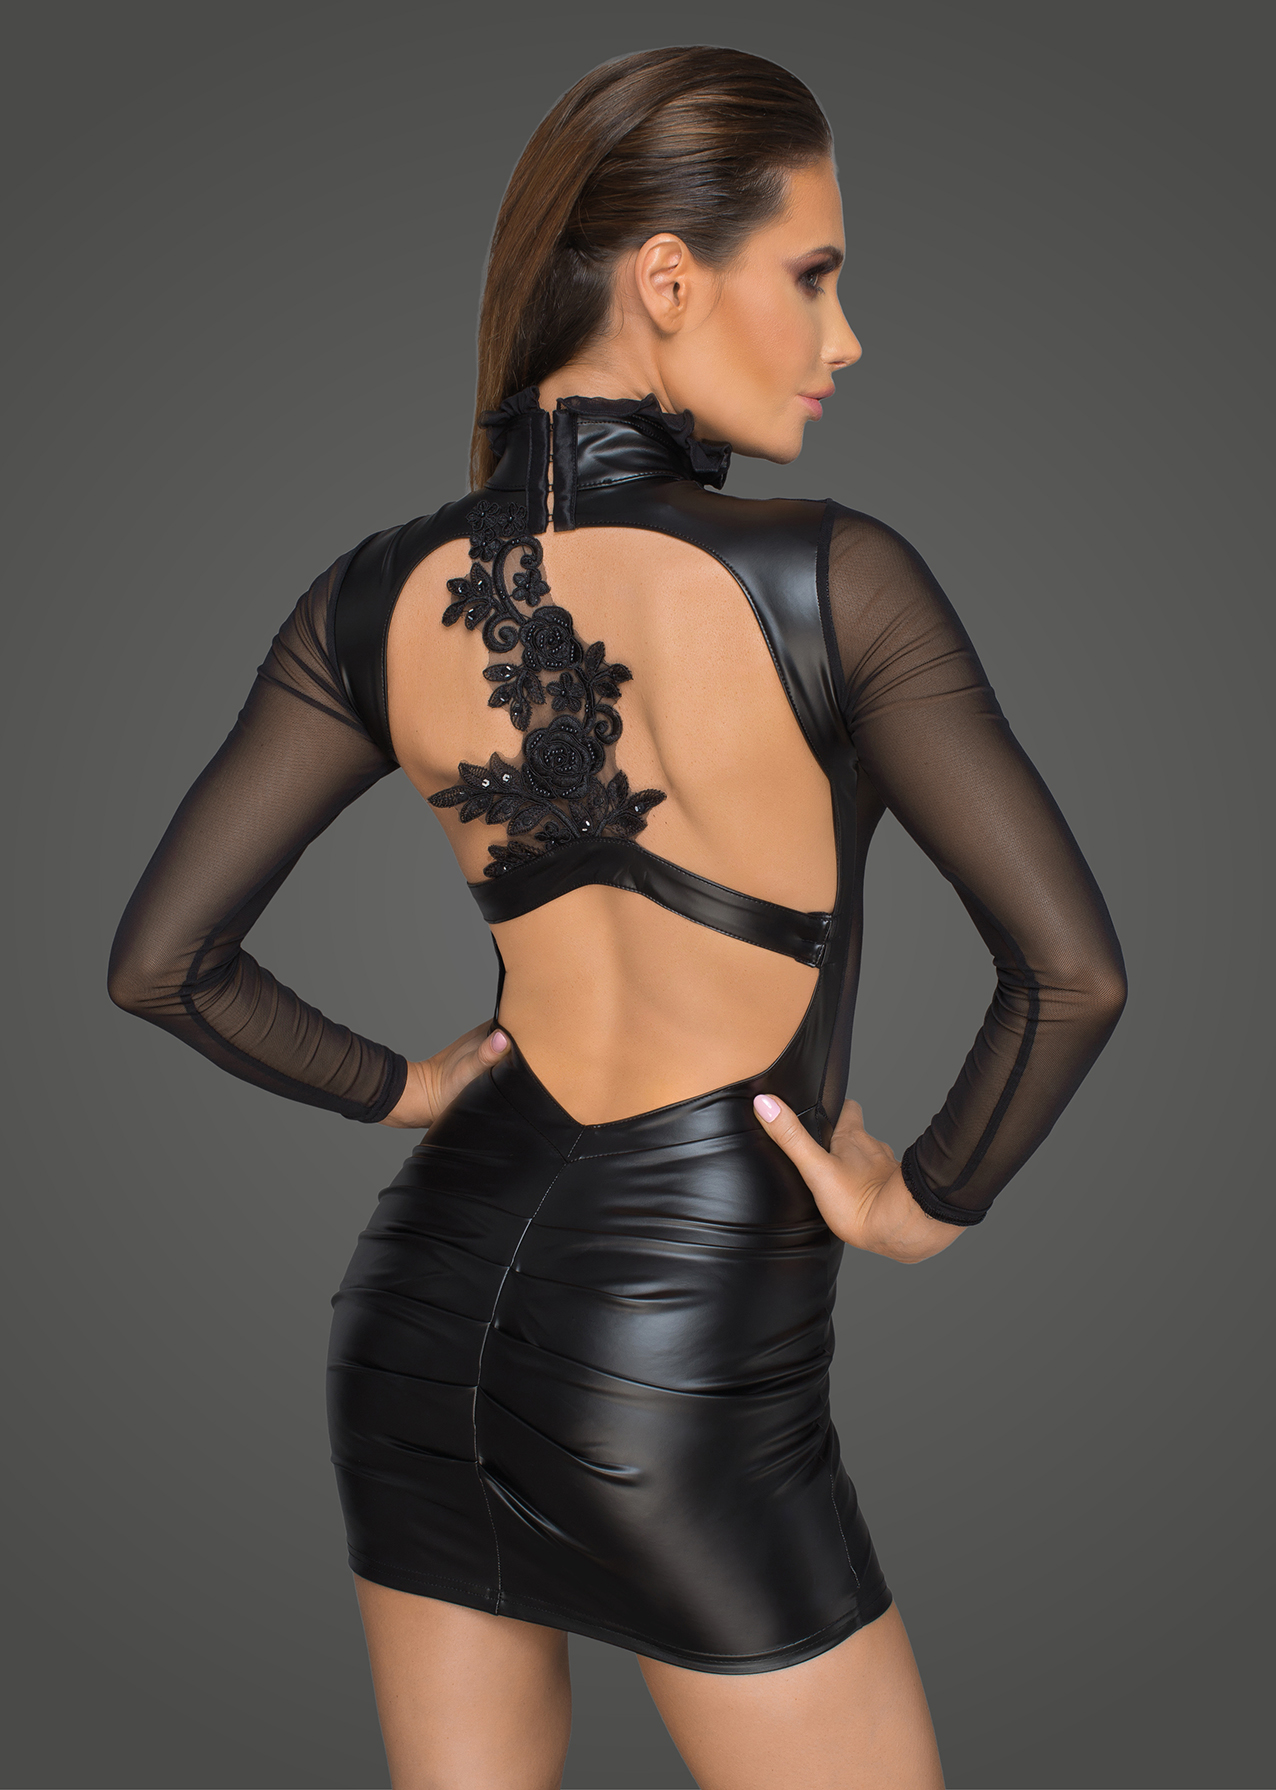 F142 Powerwetlook mit Tüll Minikleid mit Applikationen VIP